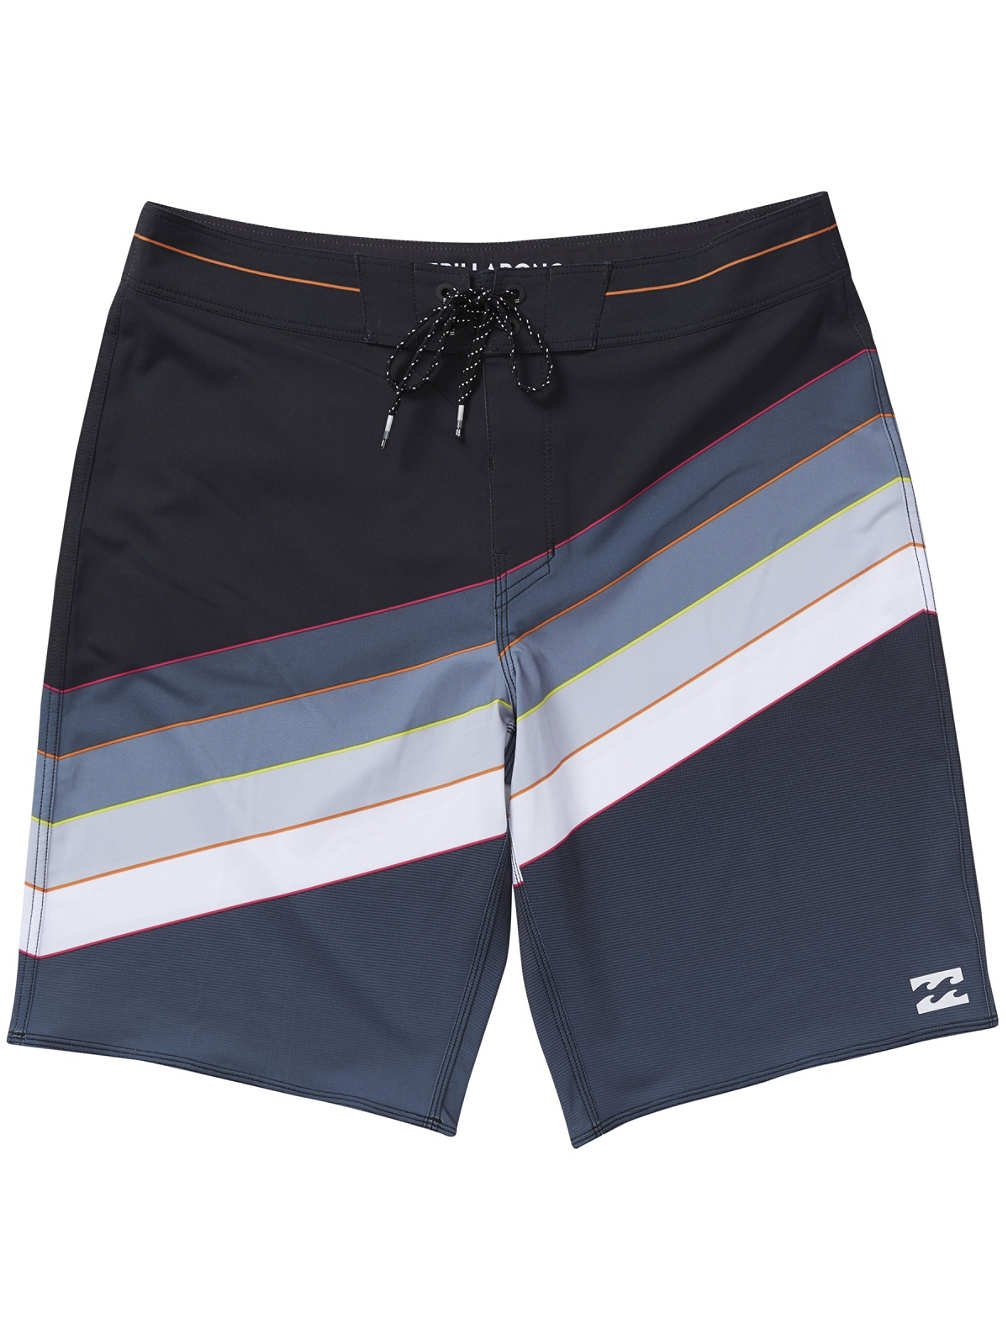 TALLA 34. G.S.M. Europe - Billabong Hombre North Point X 20 Bañador